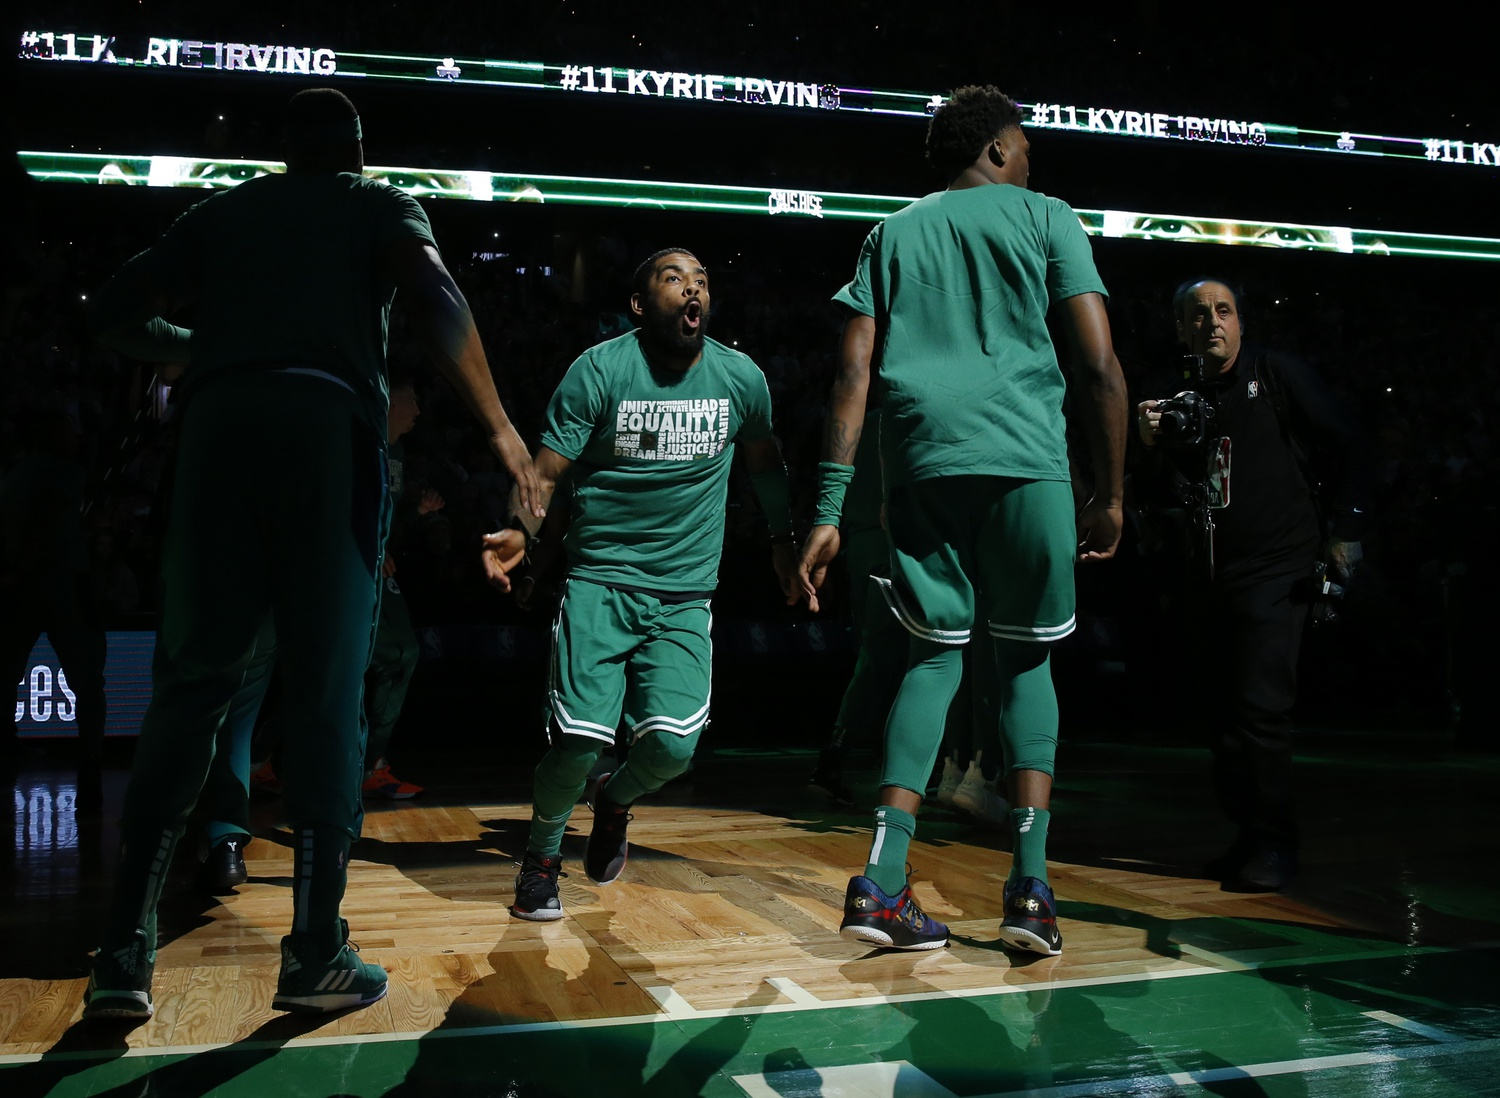 Your Afternoon Dump... We're all hoping Kyrie Irving doesn't leave Danny Ainge at the altar